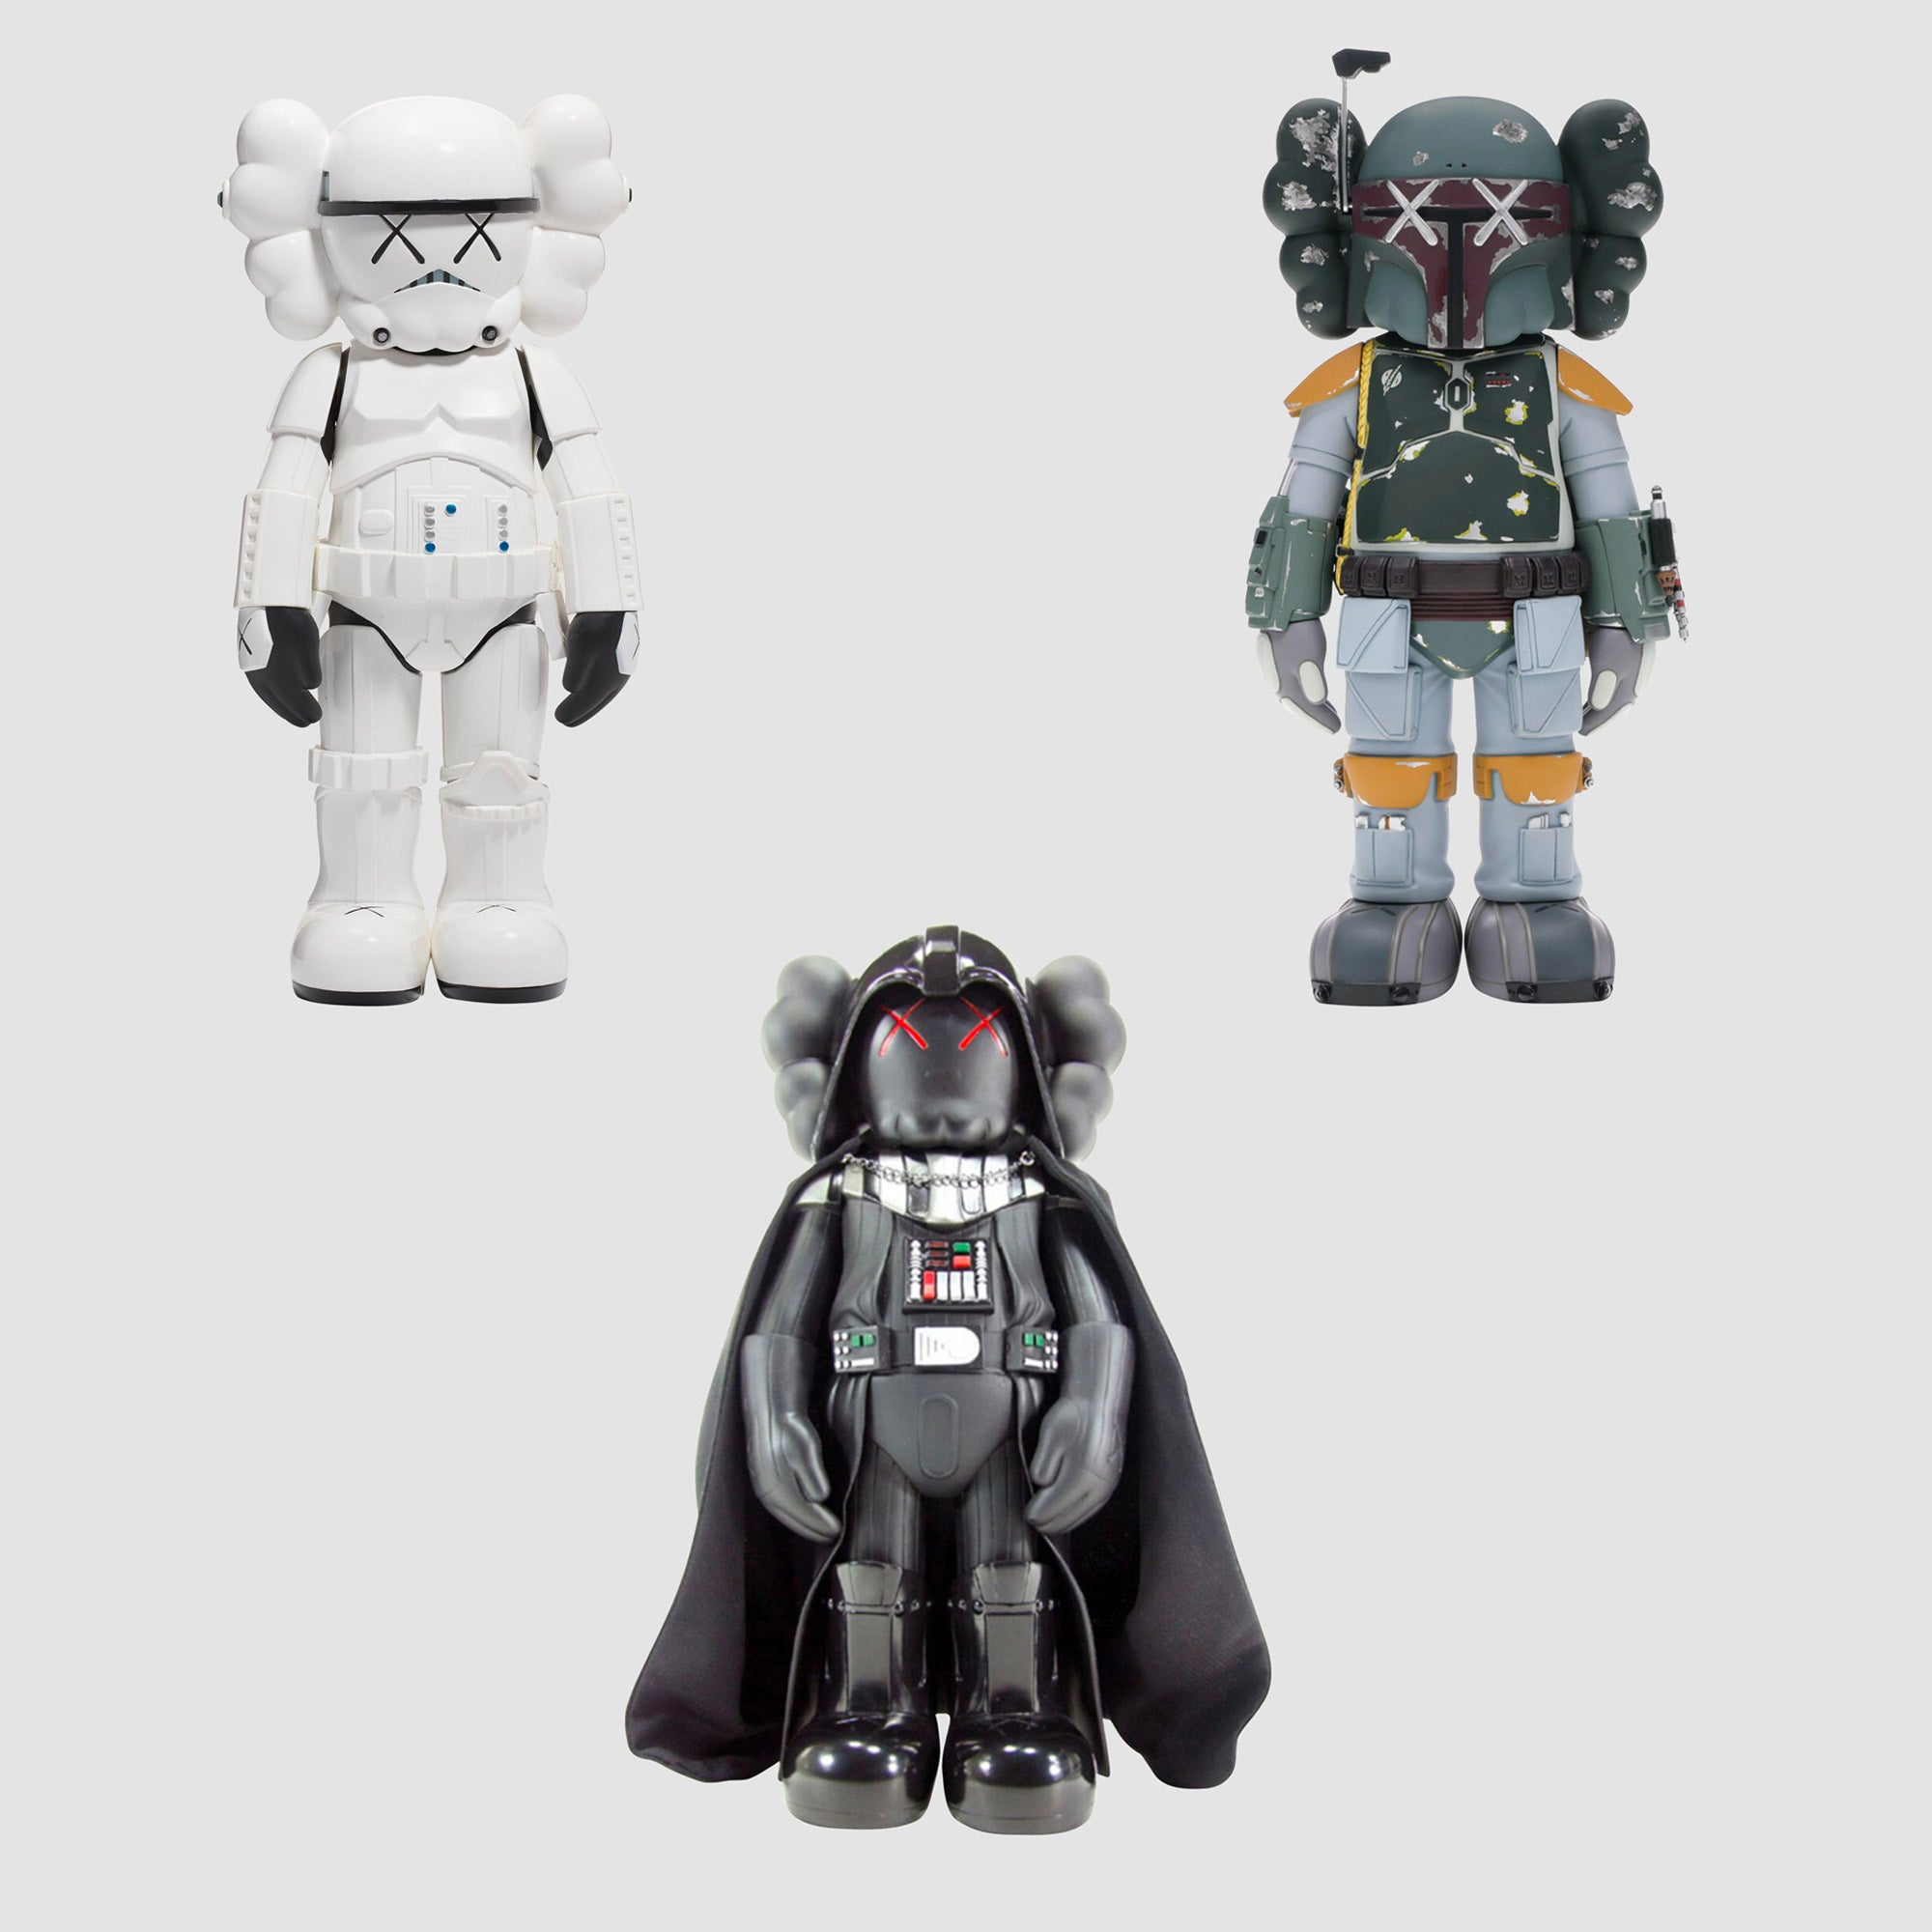 KAWS - Star Wars Set of 3 Vader, Stormtrooper, Boba Fett Companion, 2008-2013